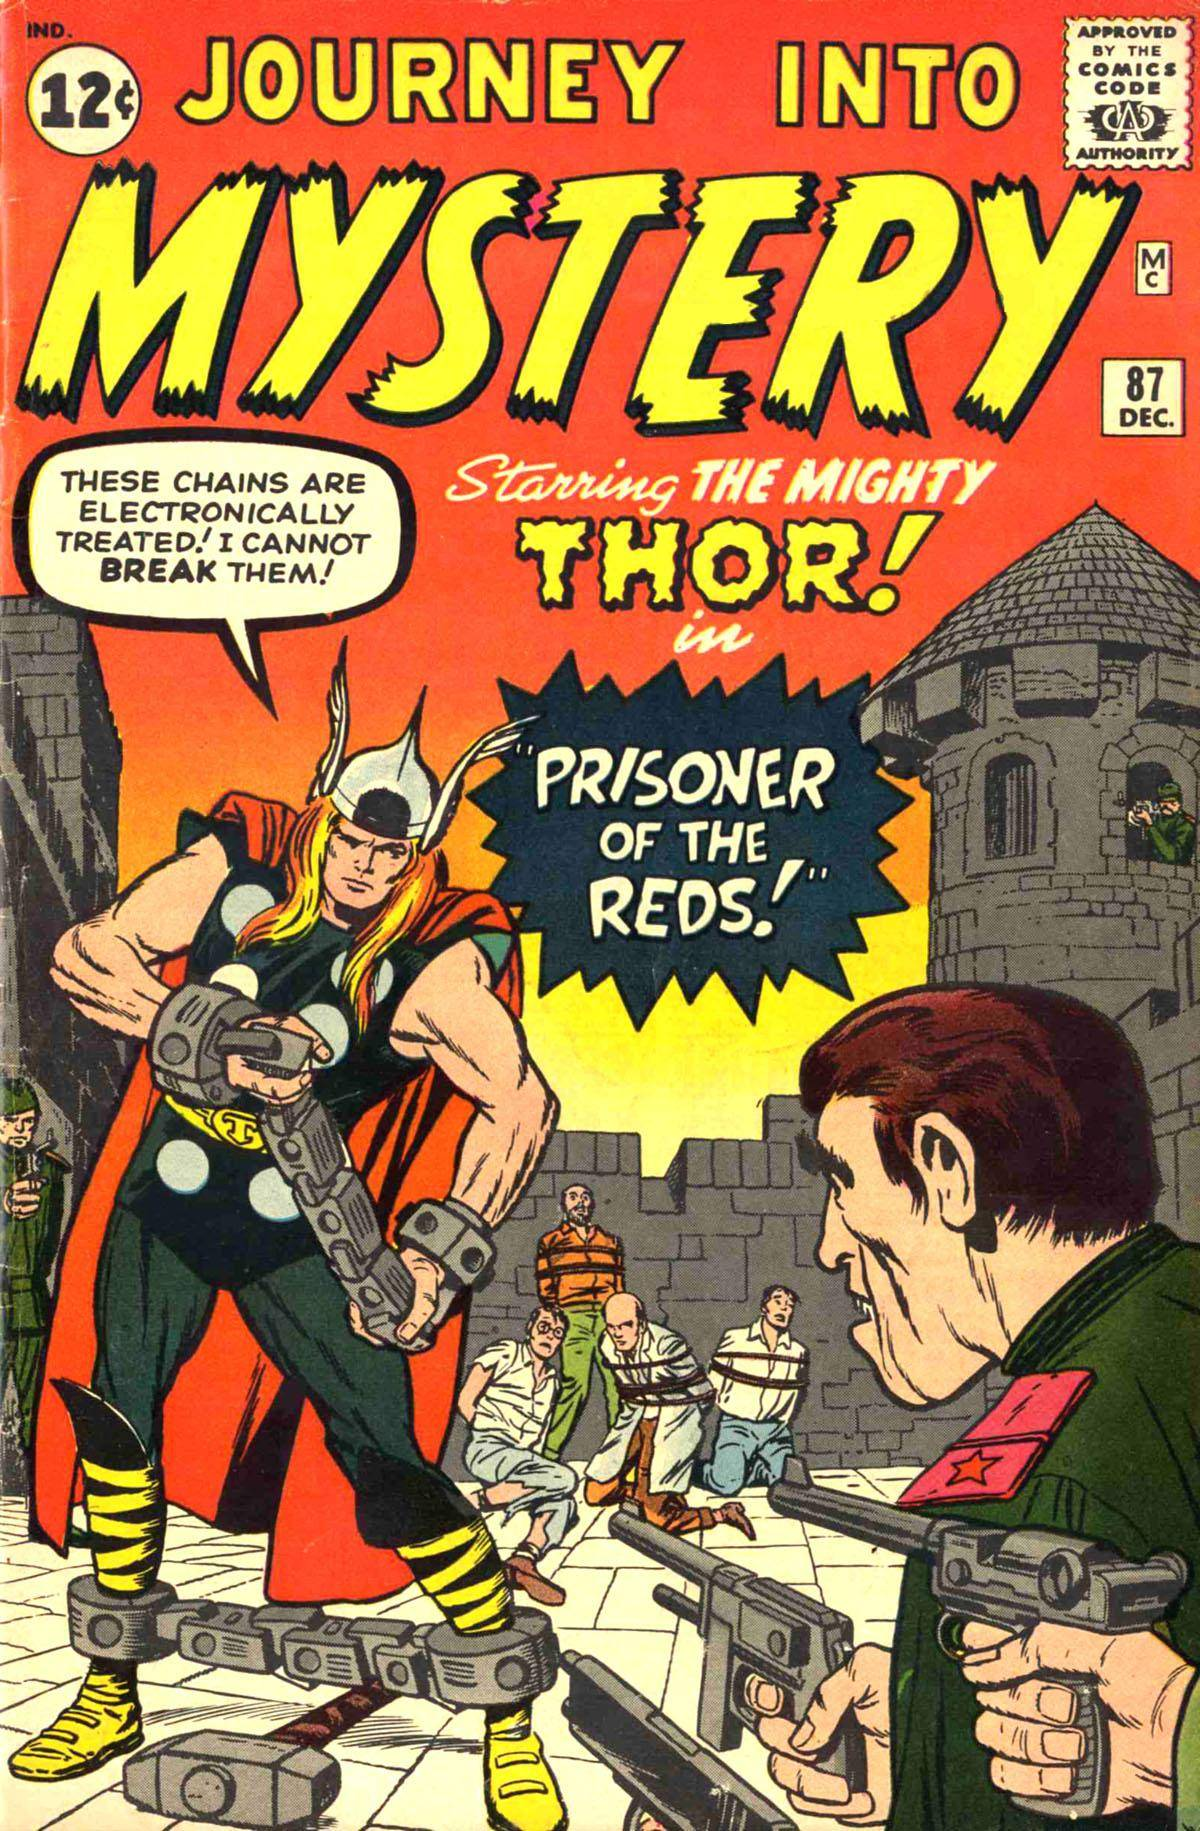 For Intruder [5 of 54] Thor [1962-12] Journey Into Mystery 087 ctc cbz